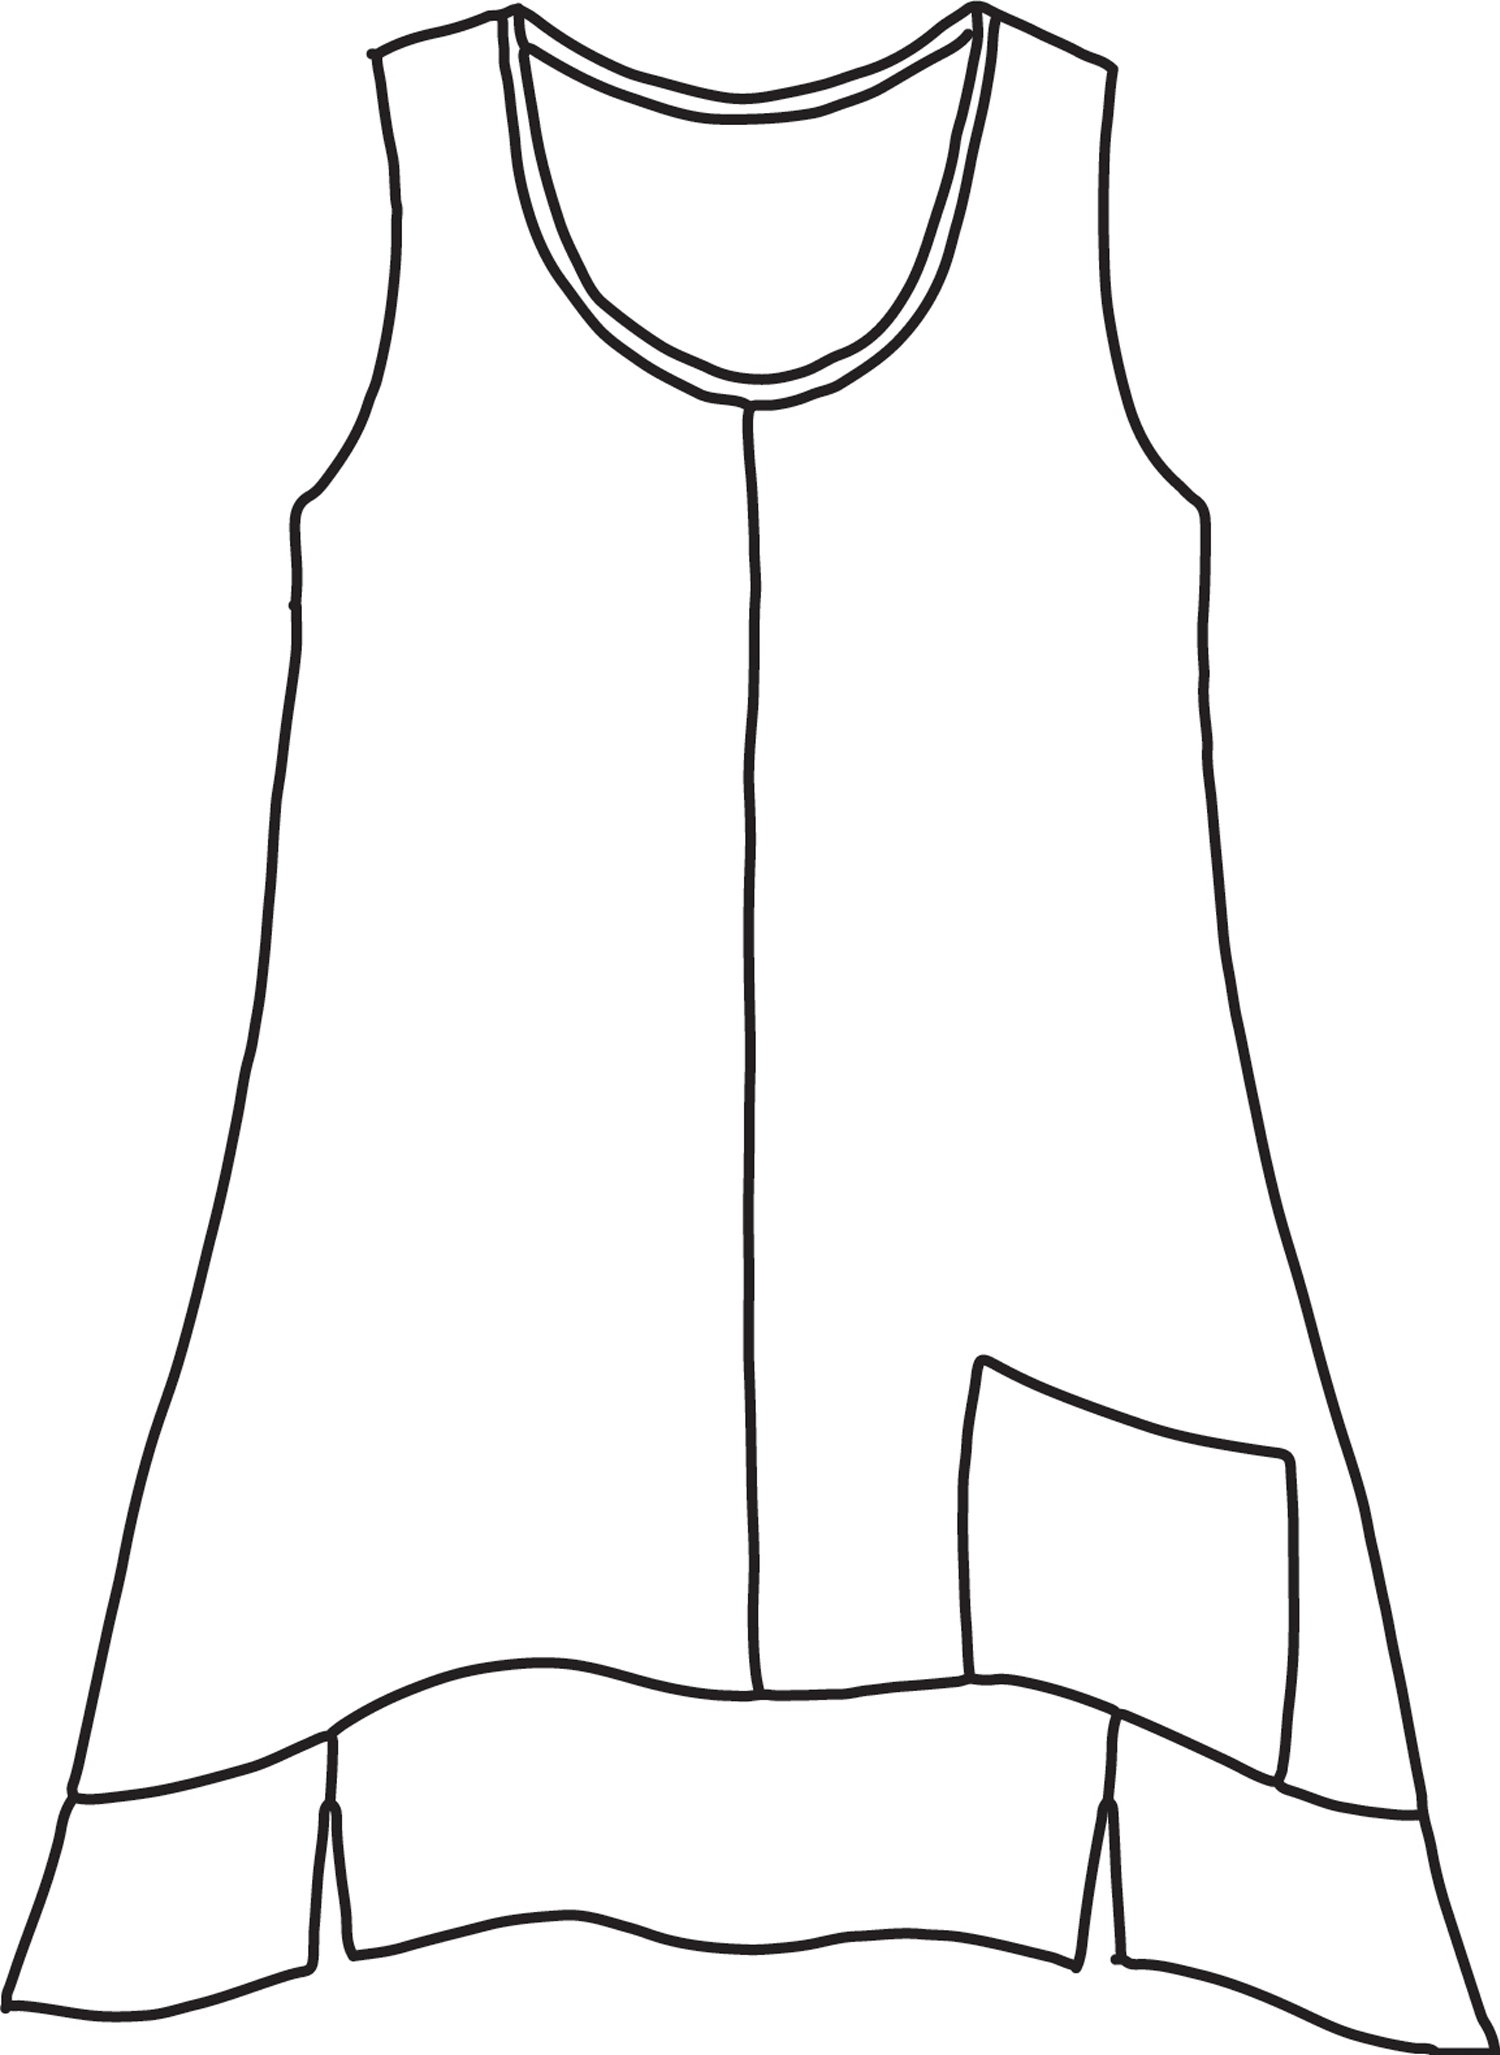 Park Tunic sketch image